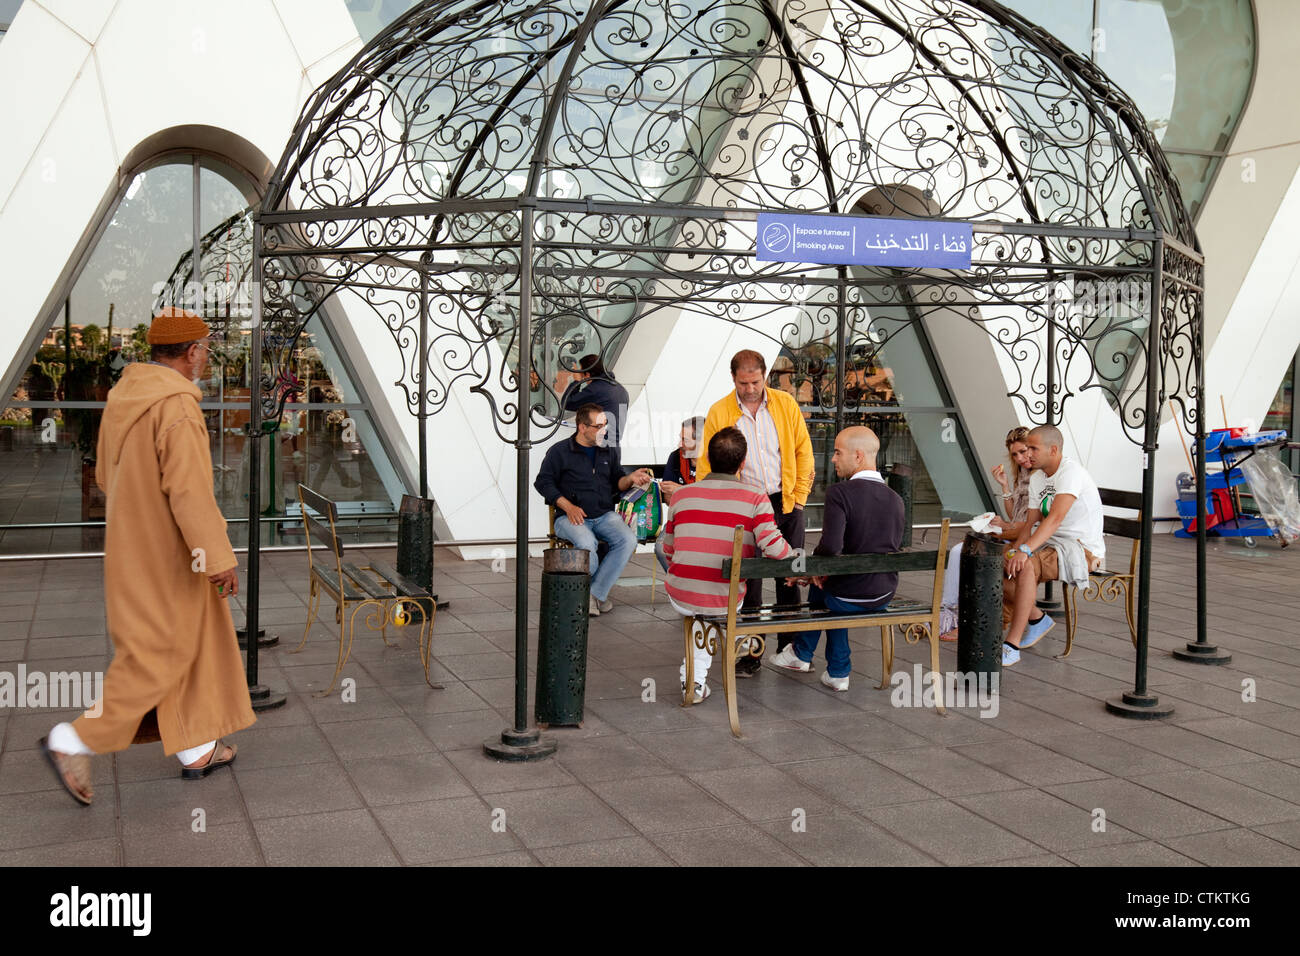 People in the smoking permitted area of the terminal, Marrakech airport, morocco Africa Stock Photo